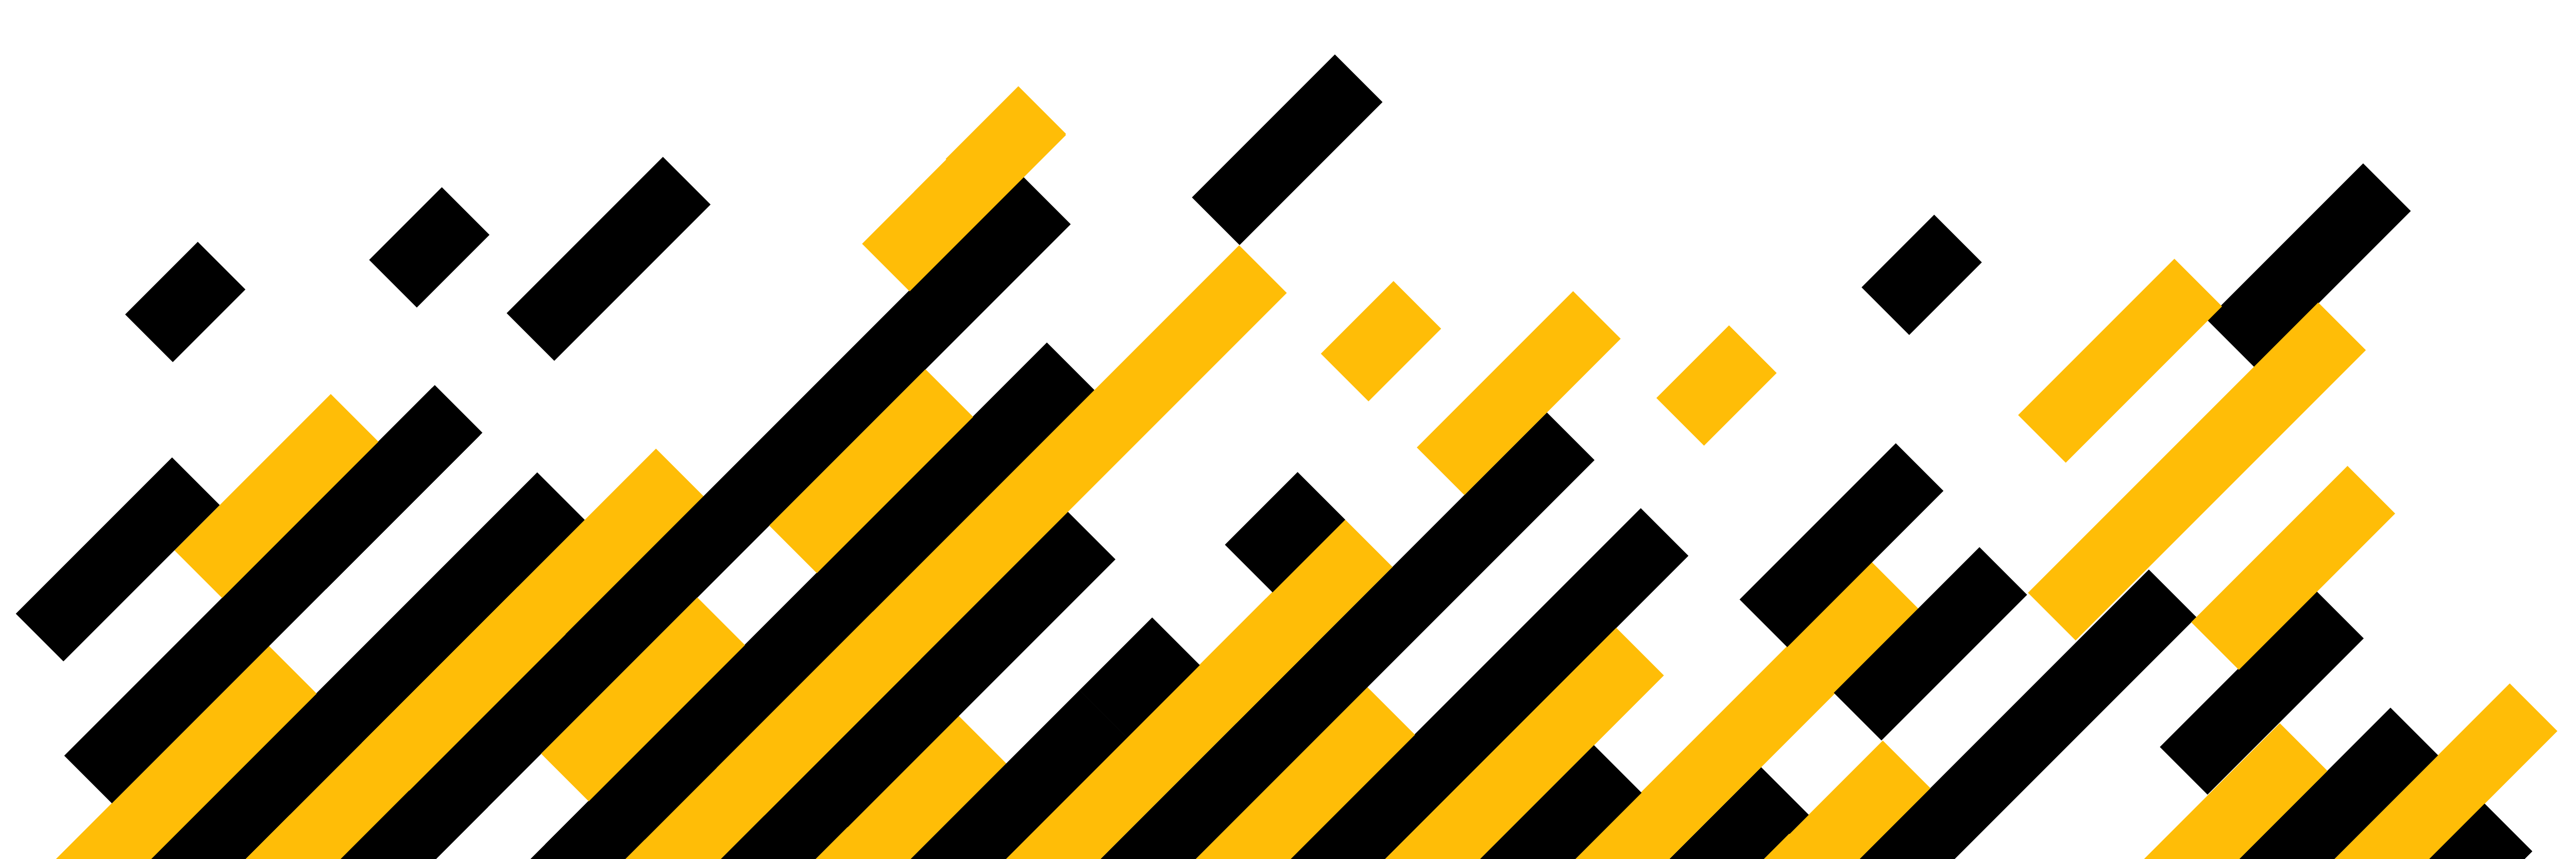 freight_tiger_identity_hero.png